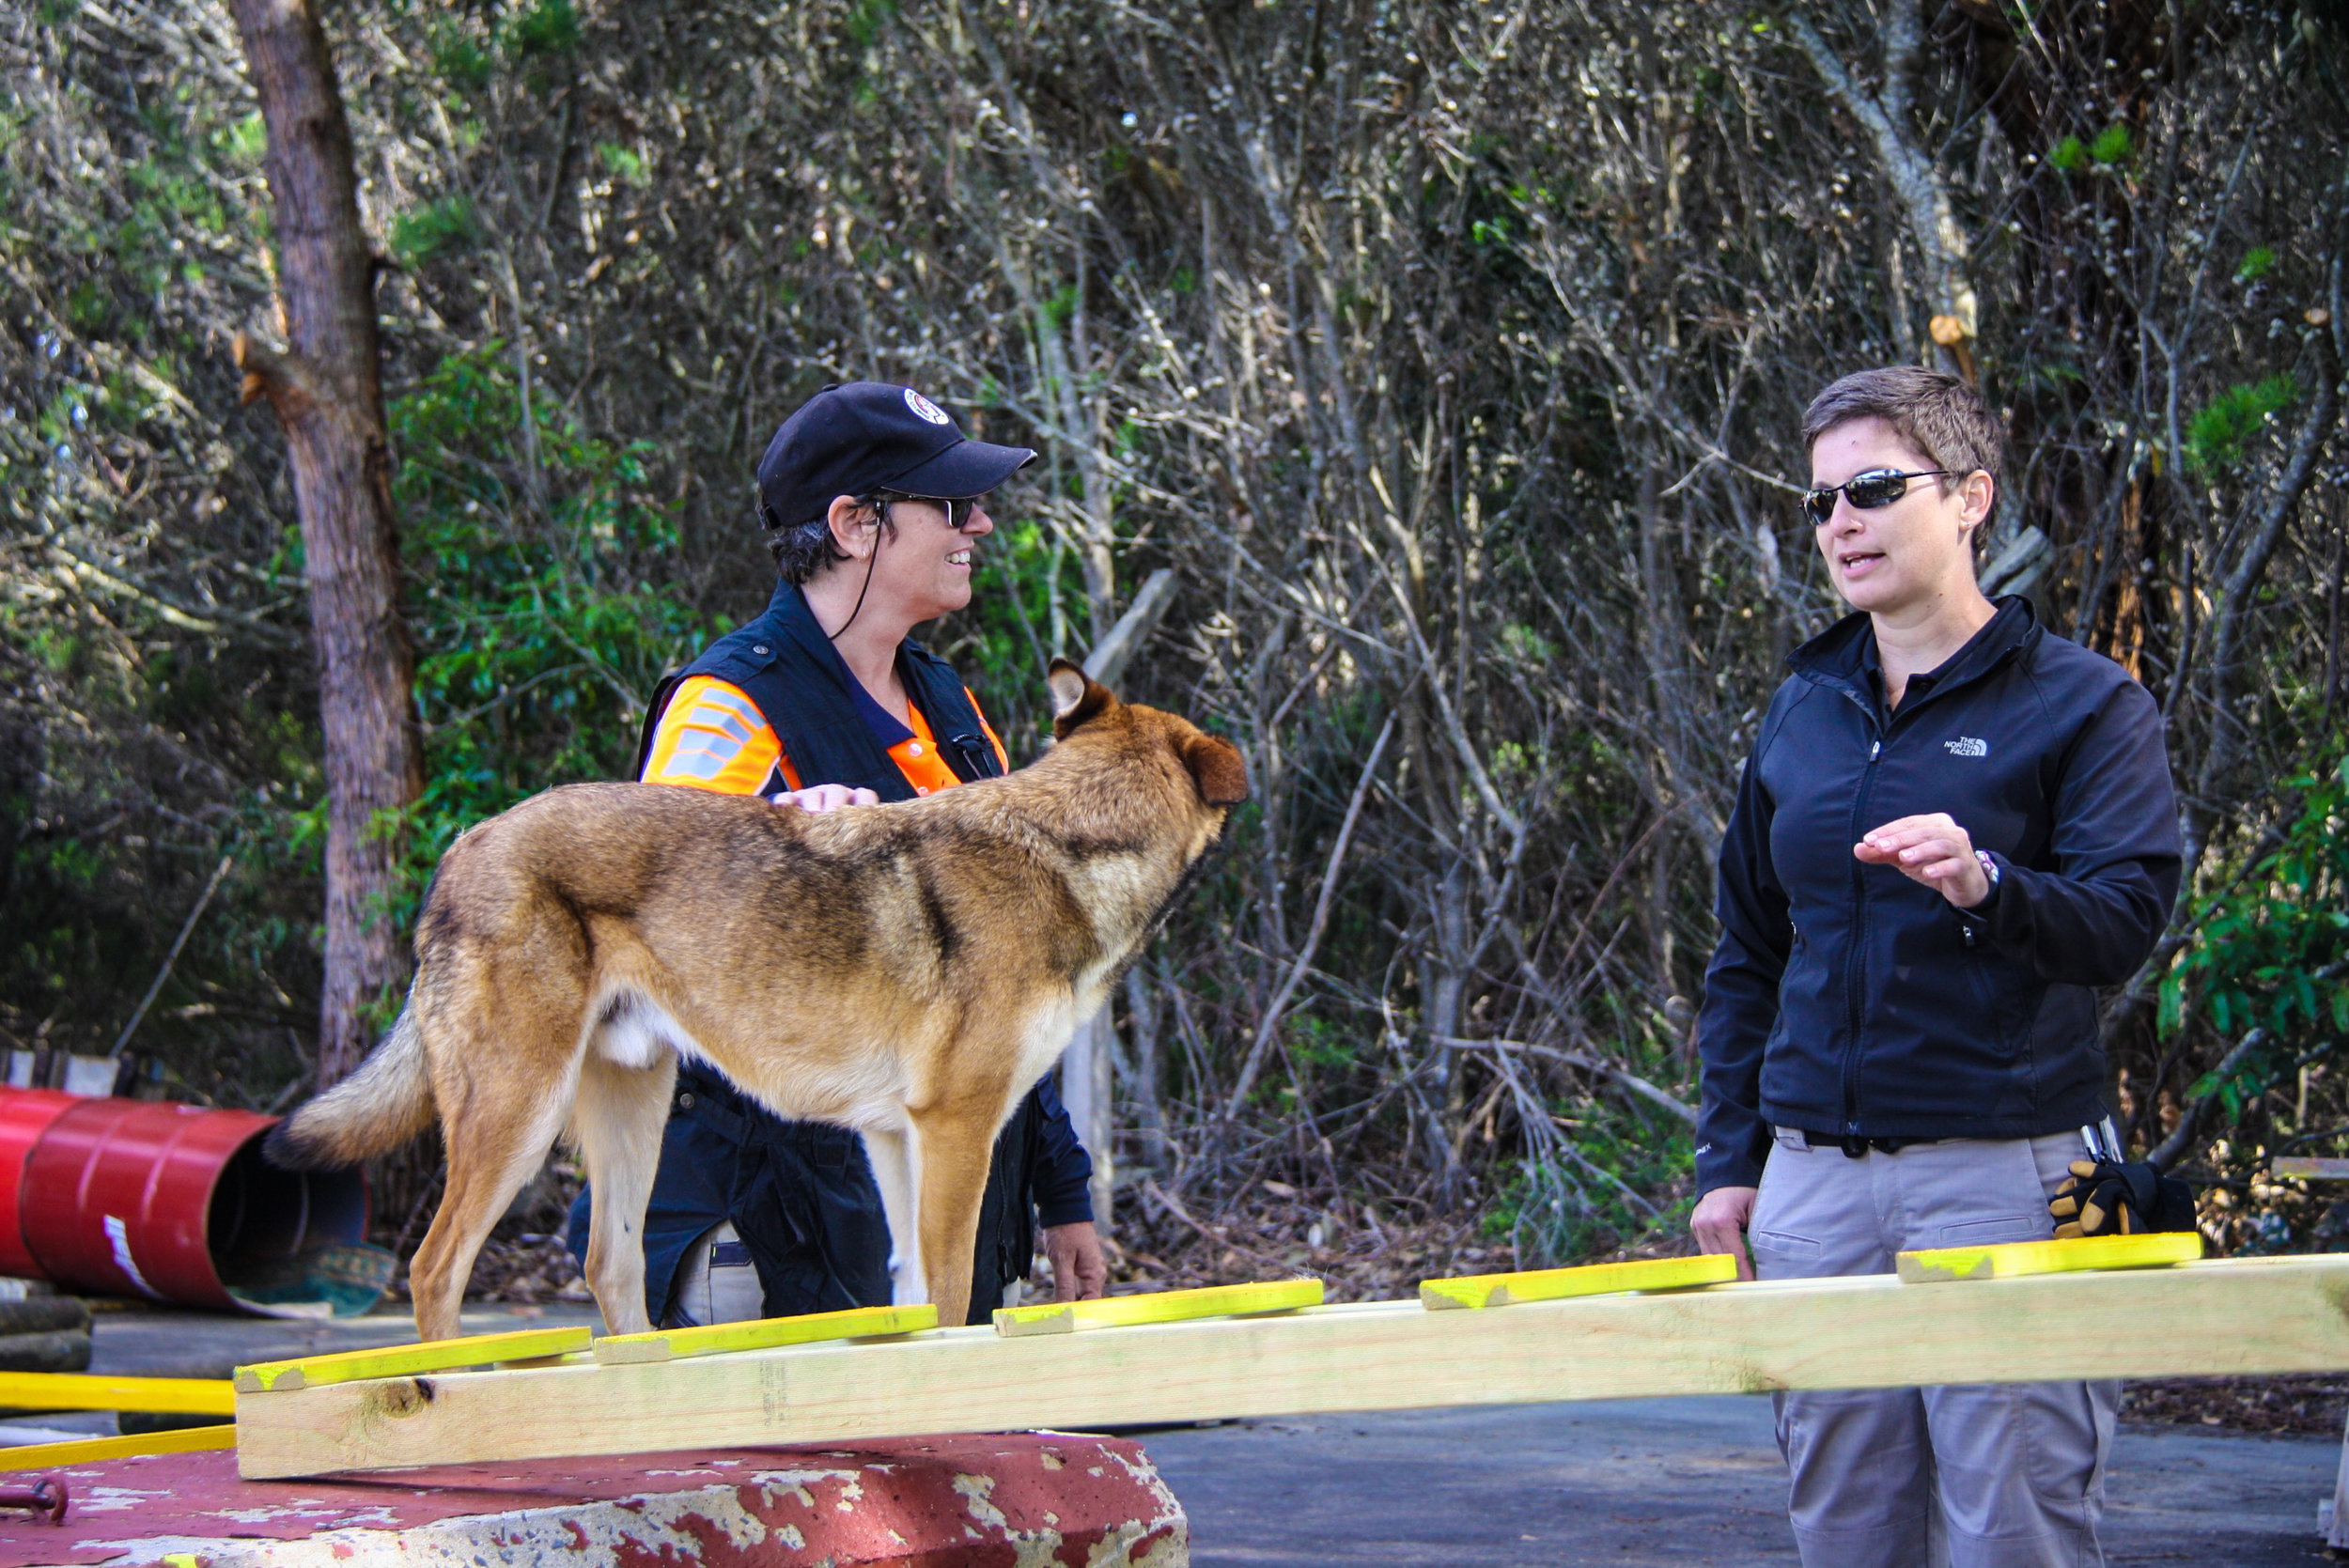 Instructor Tracy Darling discusses ways to increase the impact of ladder training with handler Adele Jago (K9 Boof: Search Dogs Sydney)